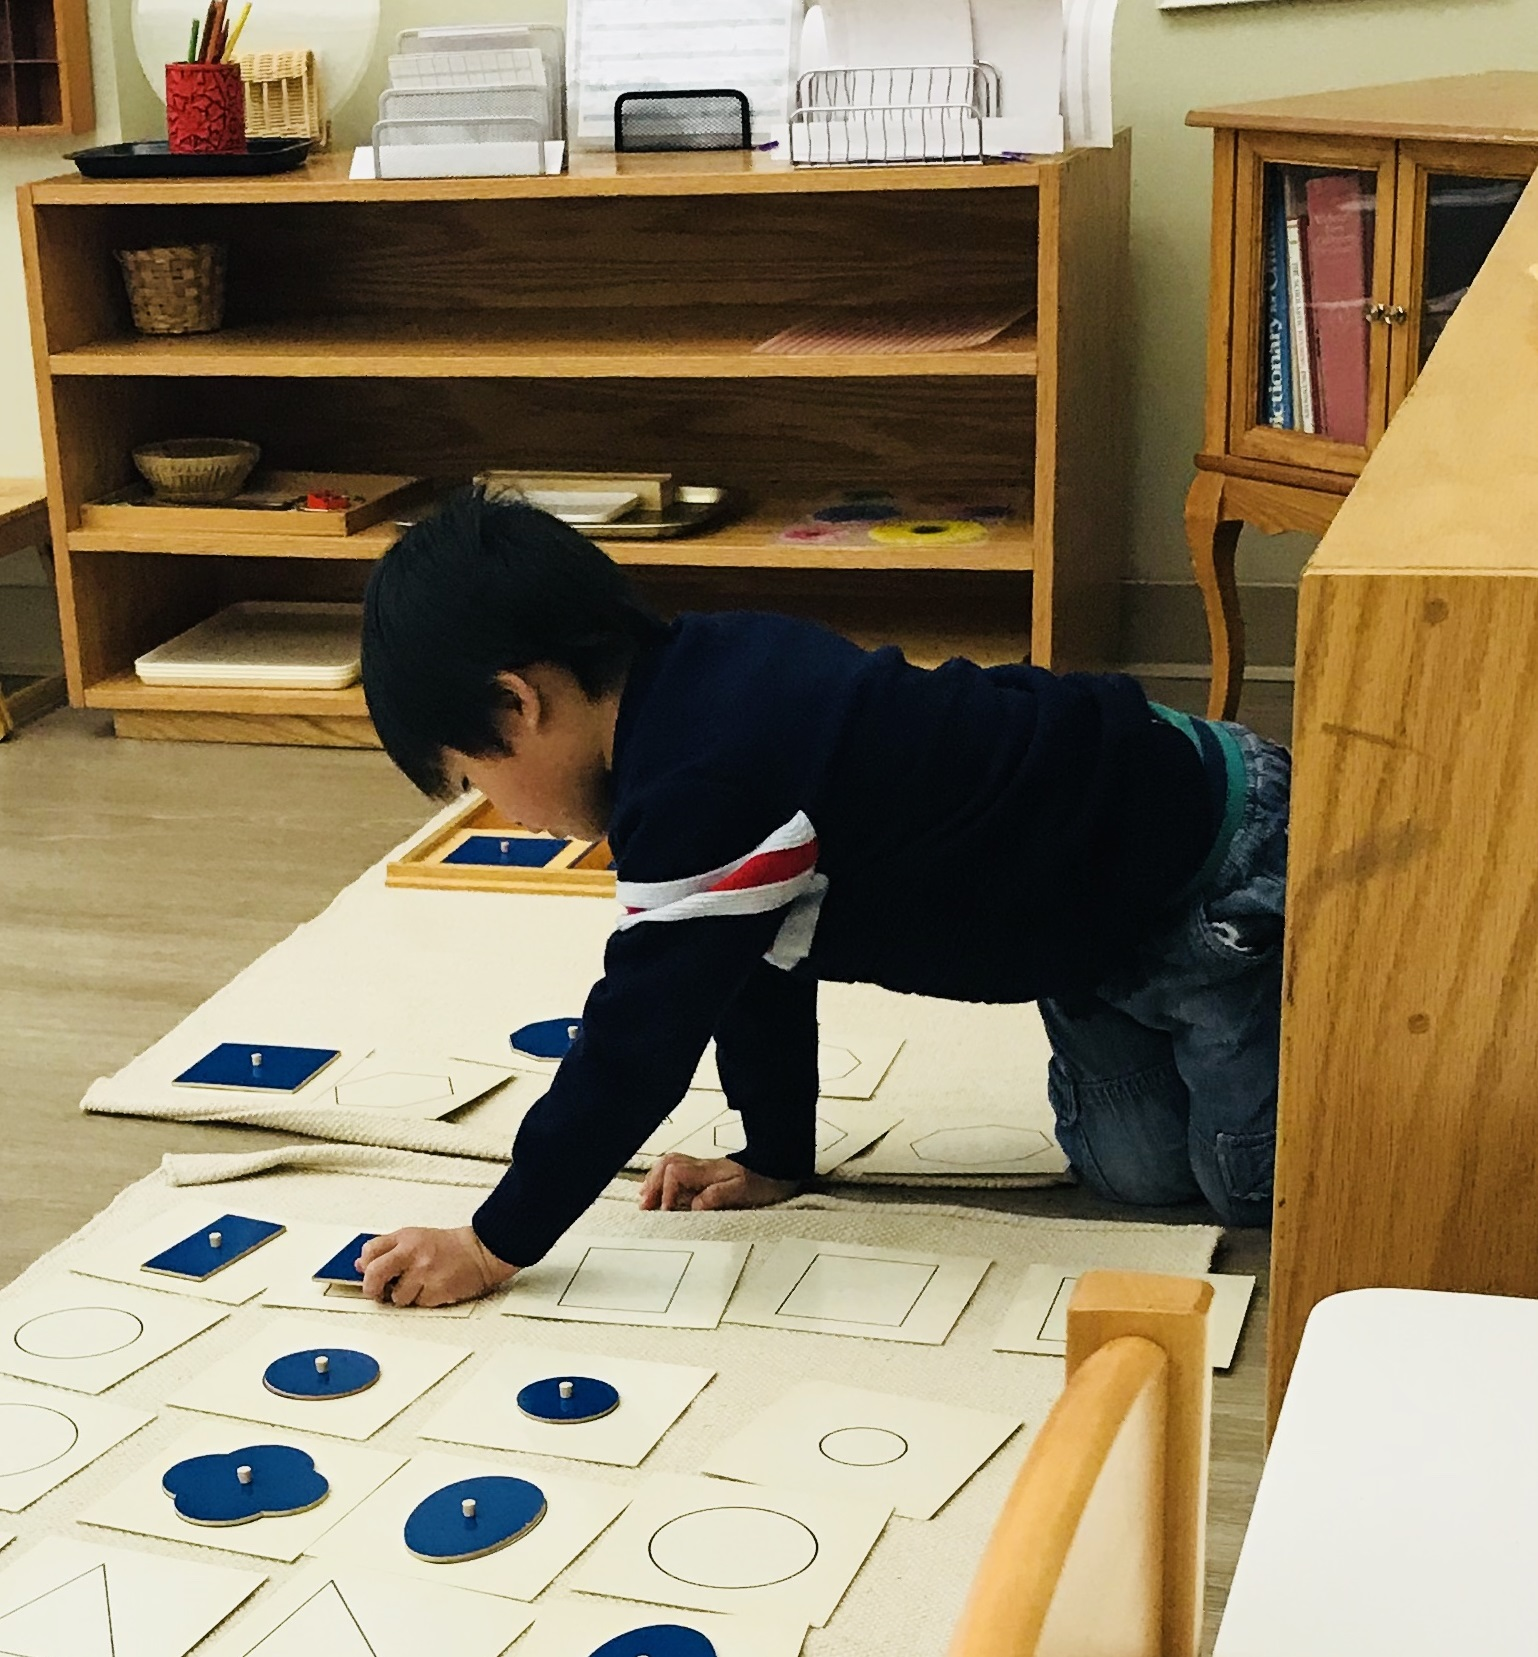 A picture of a child working with geometrical cabinet insets.